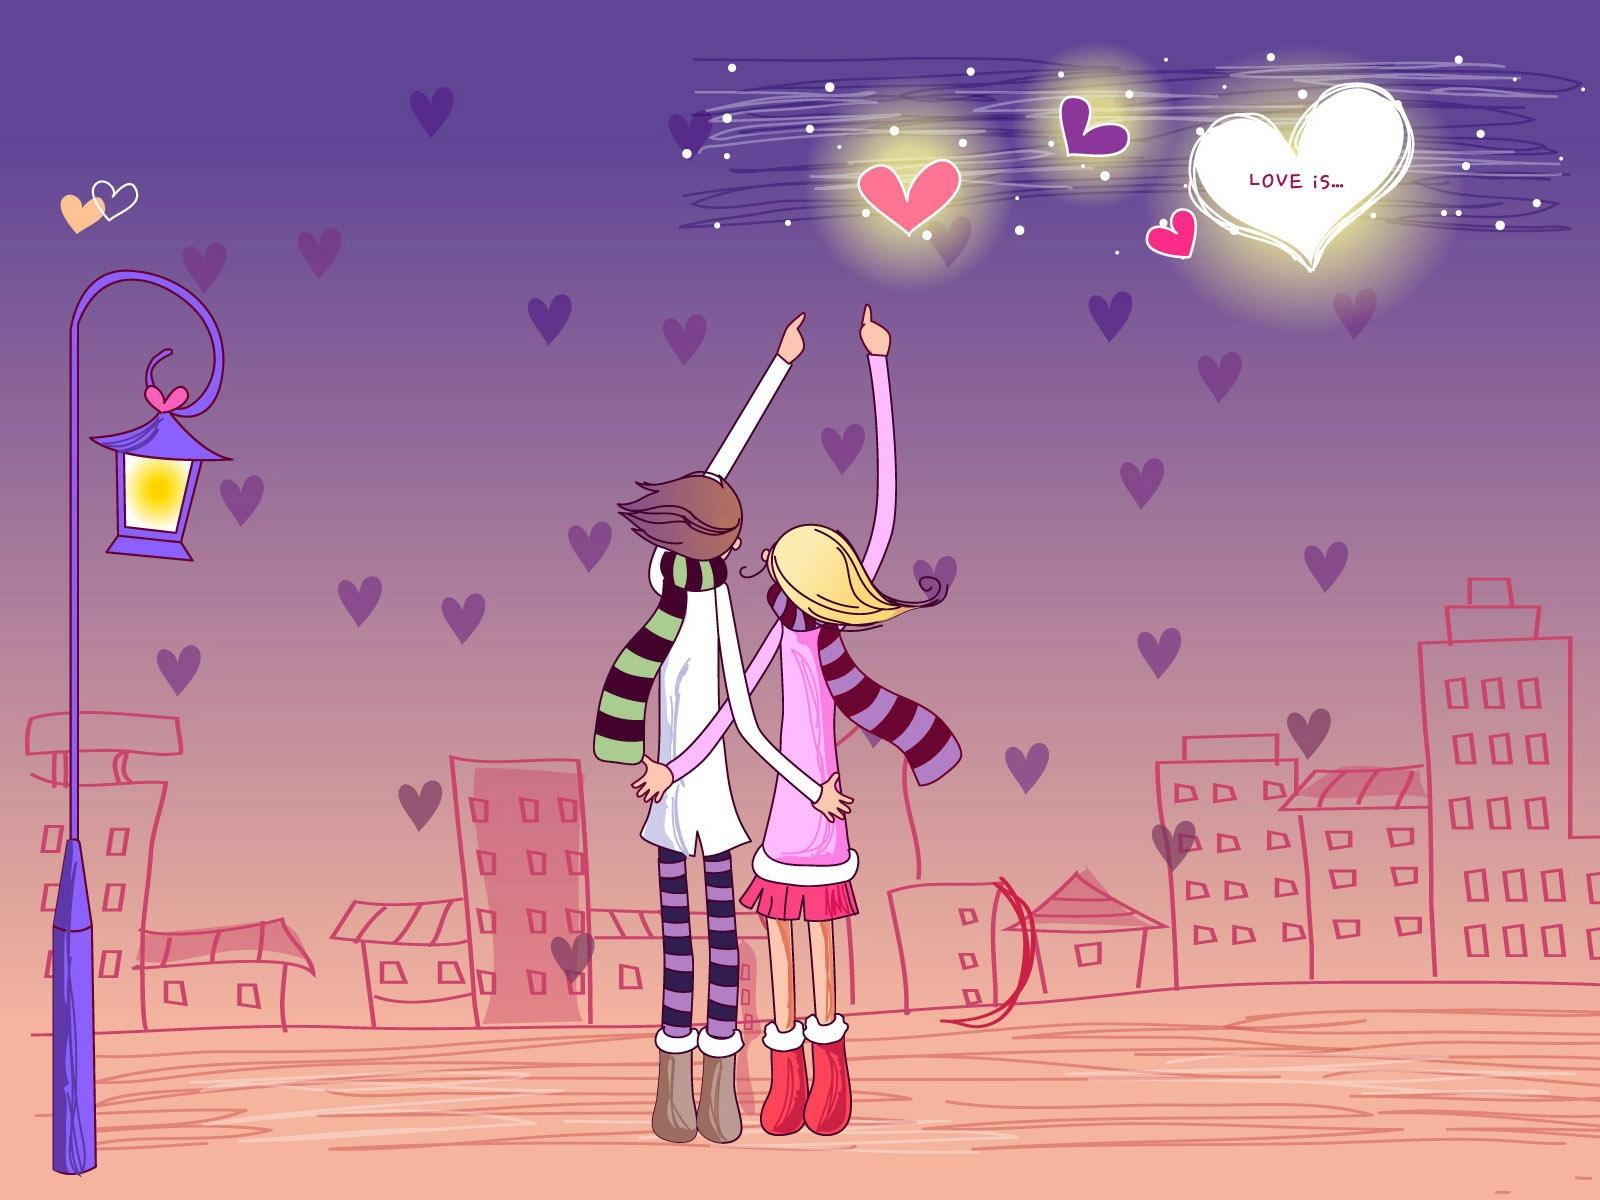 Cute Love Couple Wallpaper For Whatsapp Girly Wallpapers Hd Free Download Pixelstalk Net